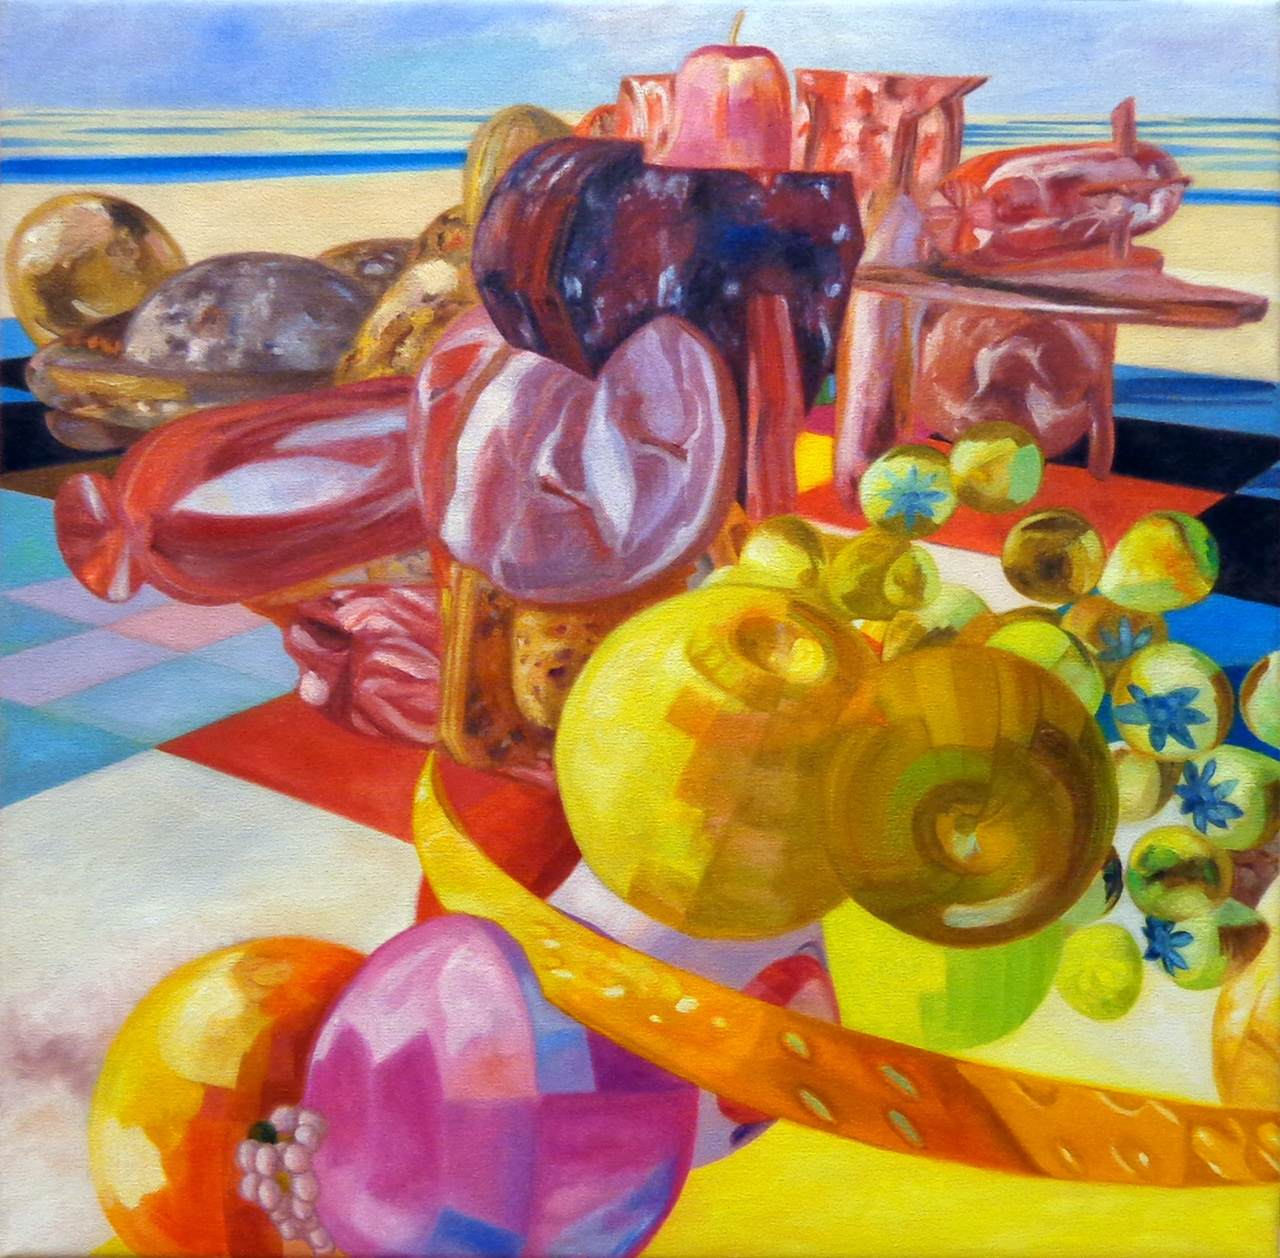 Still Life with Fruit, Meat and Excrement, 2014